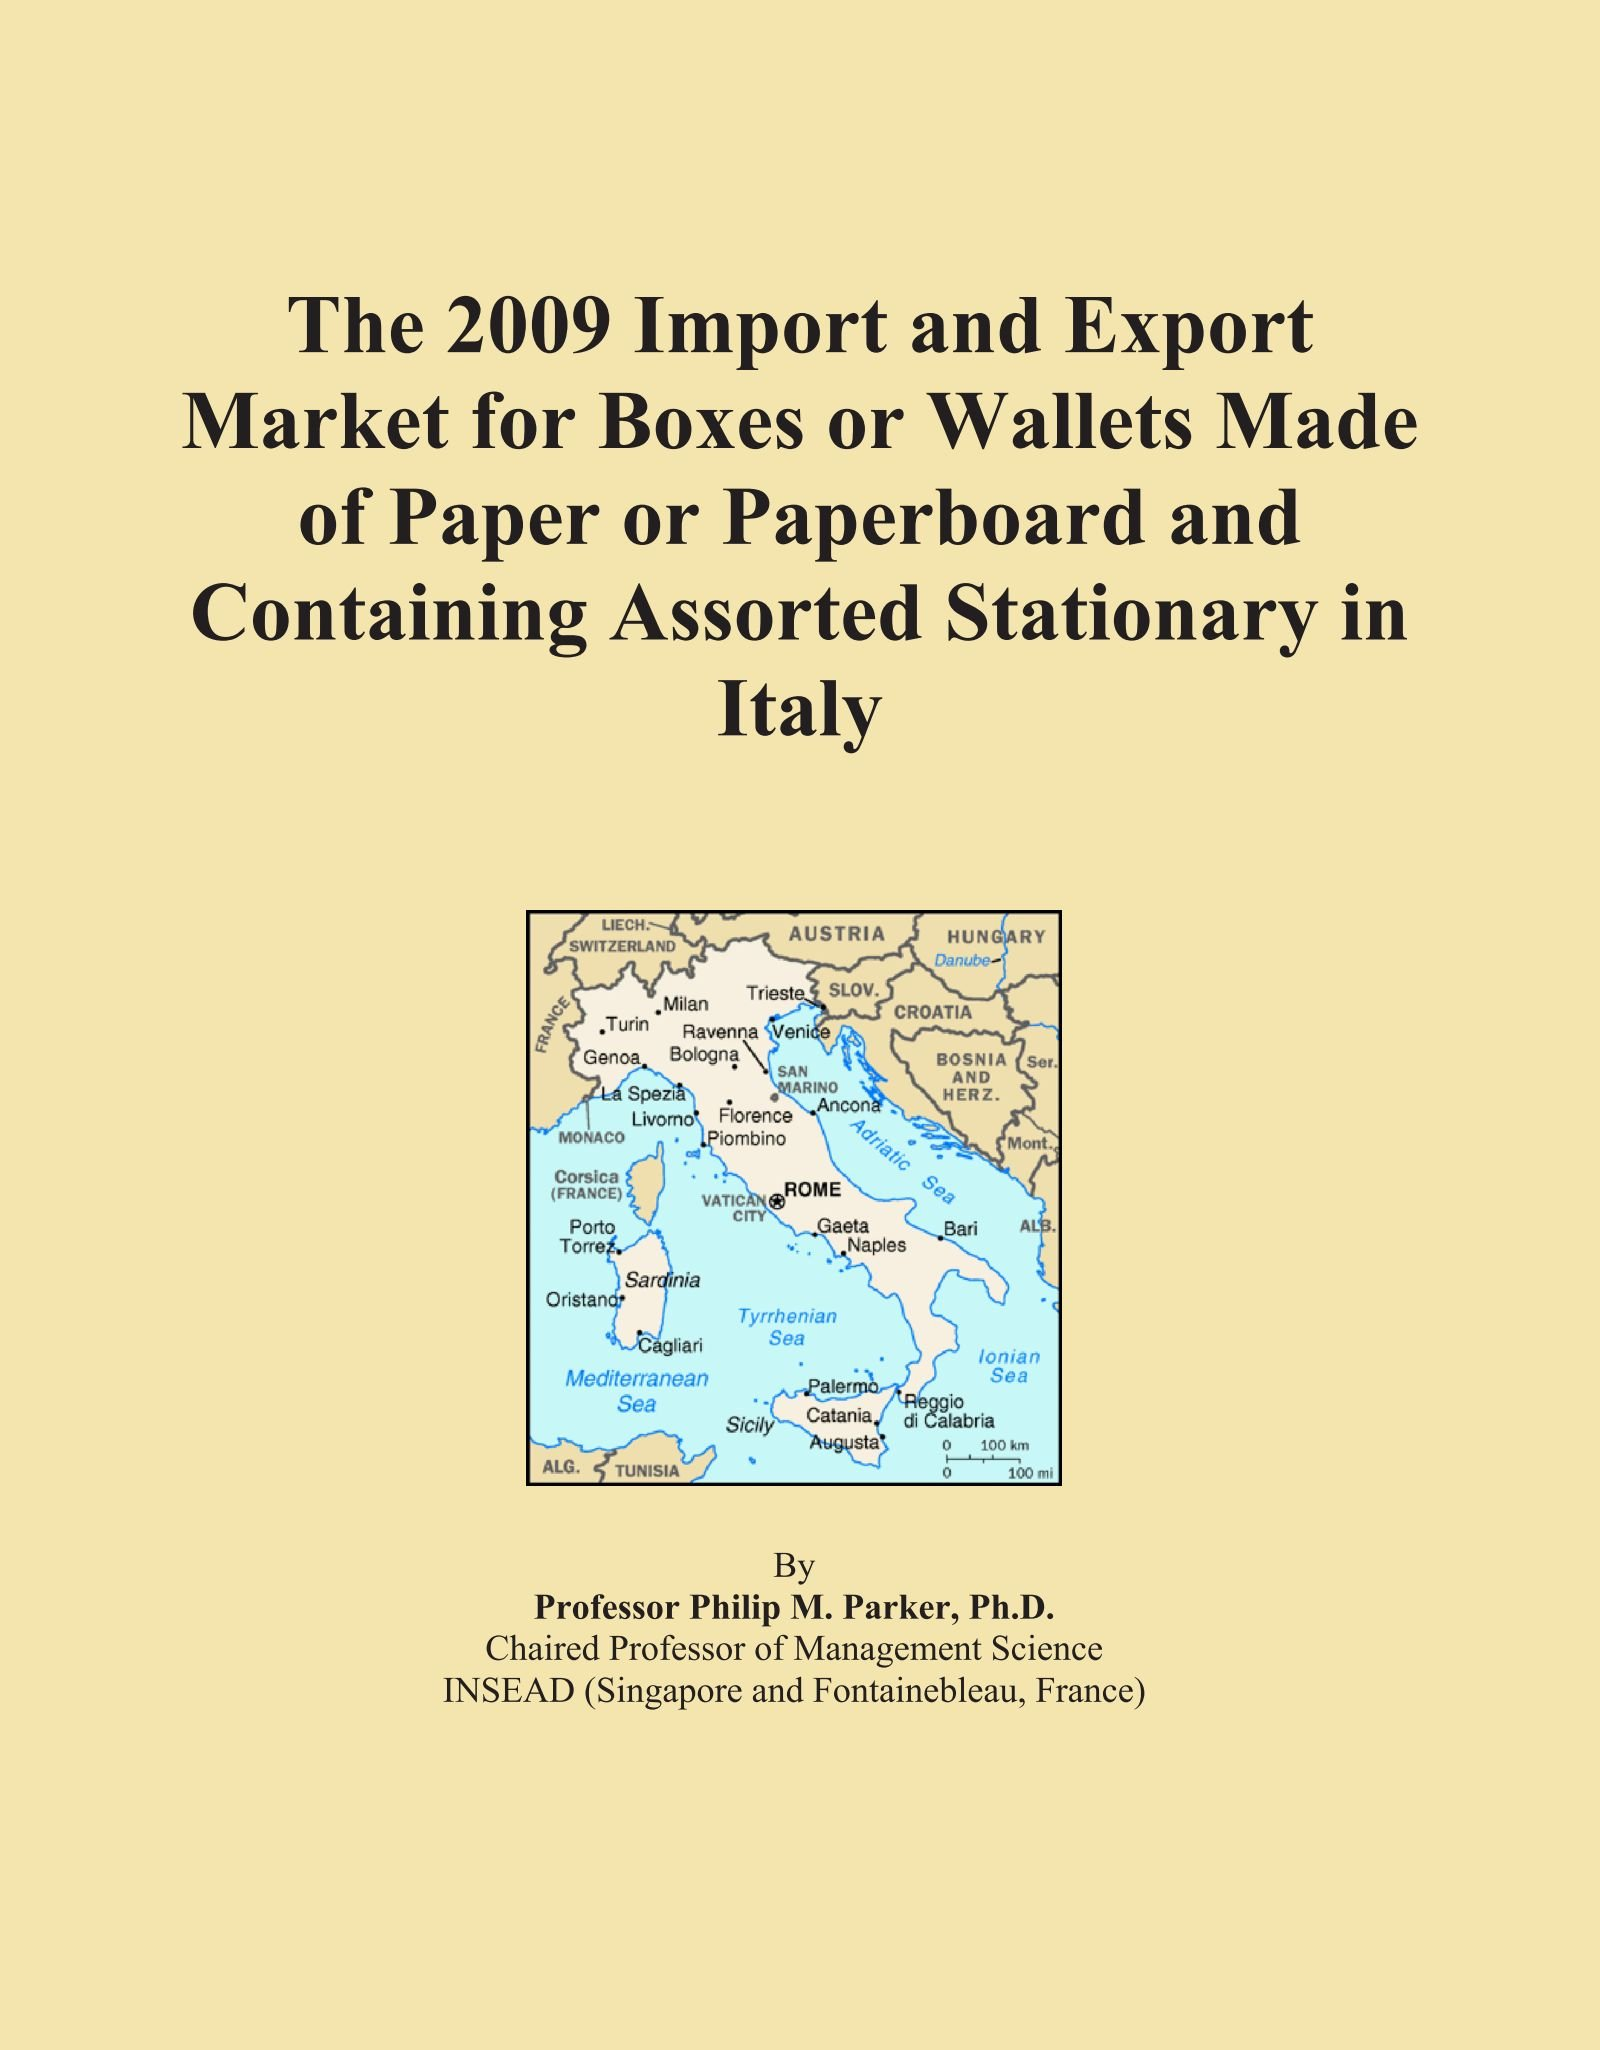 Download The 2009 Import and Export Market for Boxes or Wallets Made of Paper or Paperboard and Containing Assorted Stationary in Italy ebook